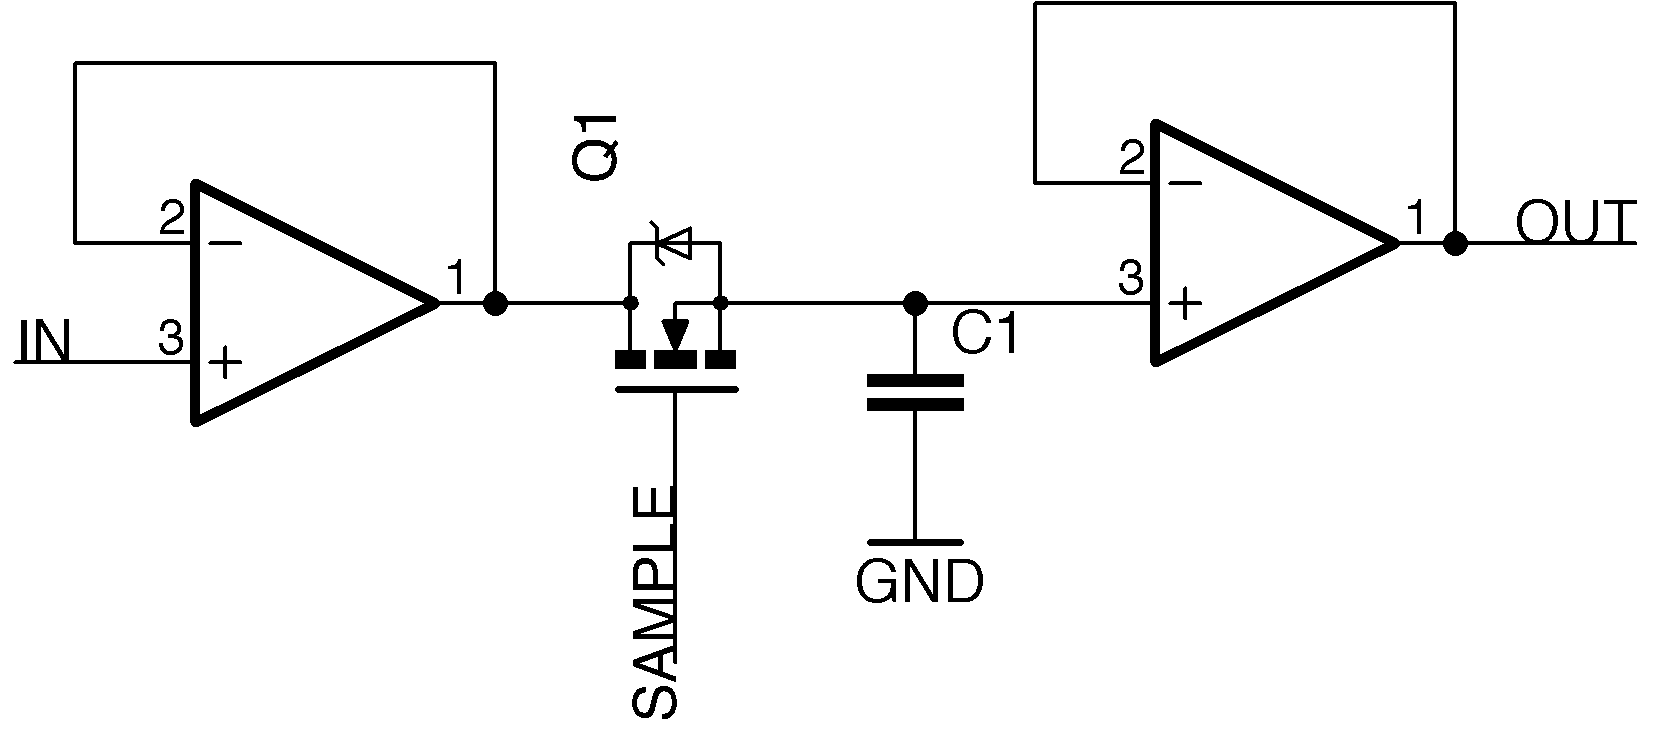 desc/analog/sample_and_hold.png